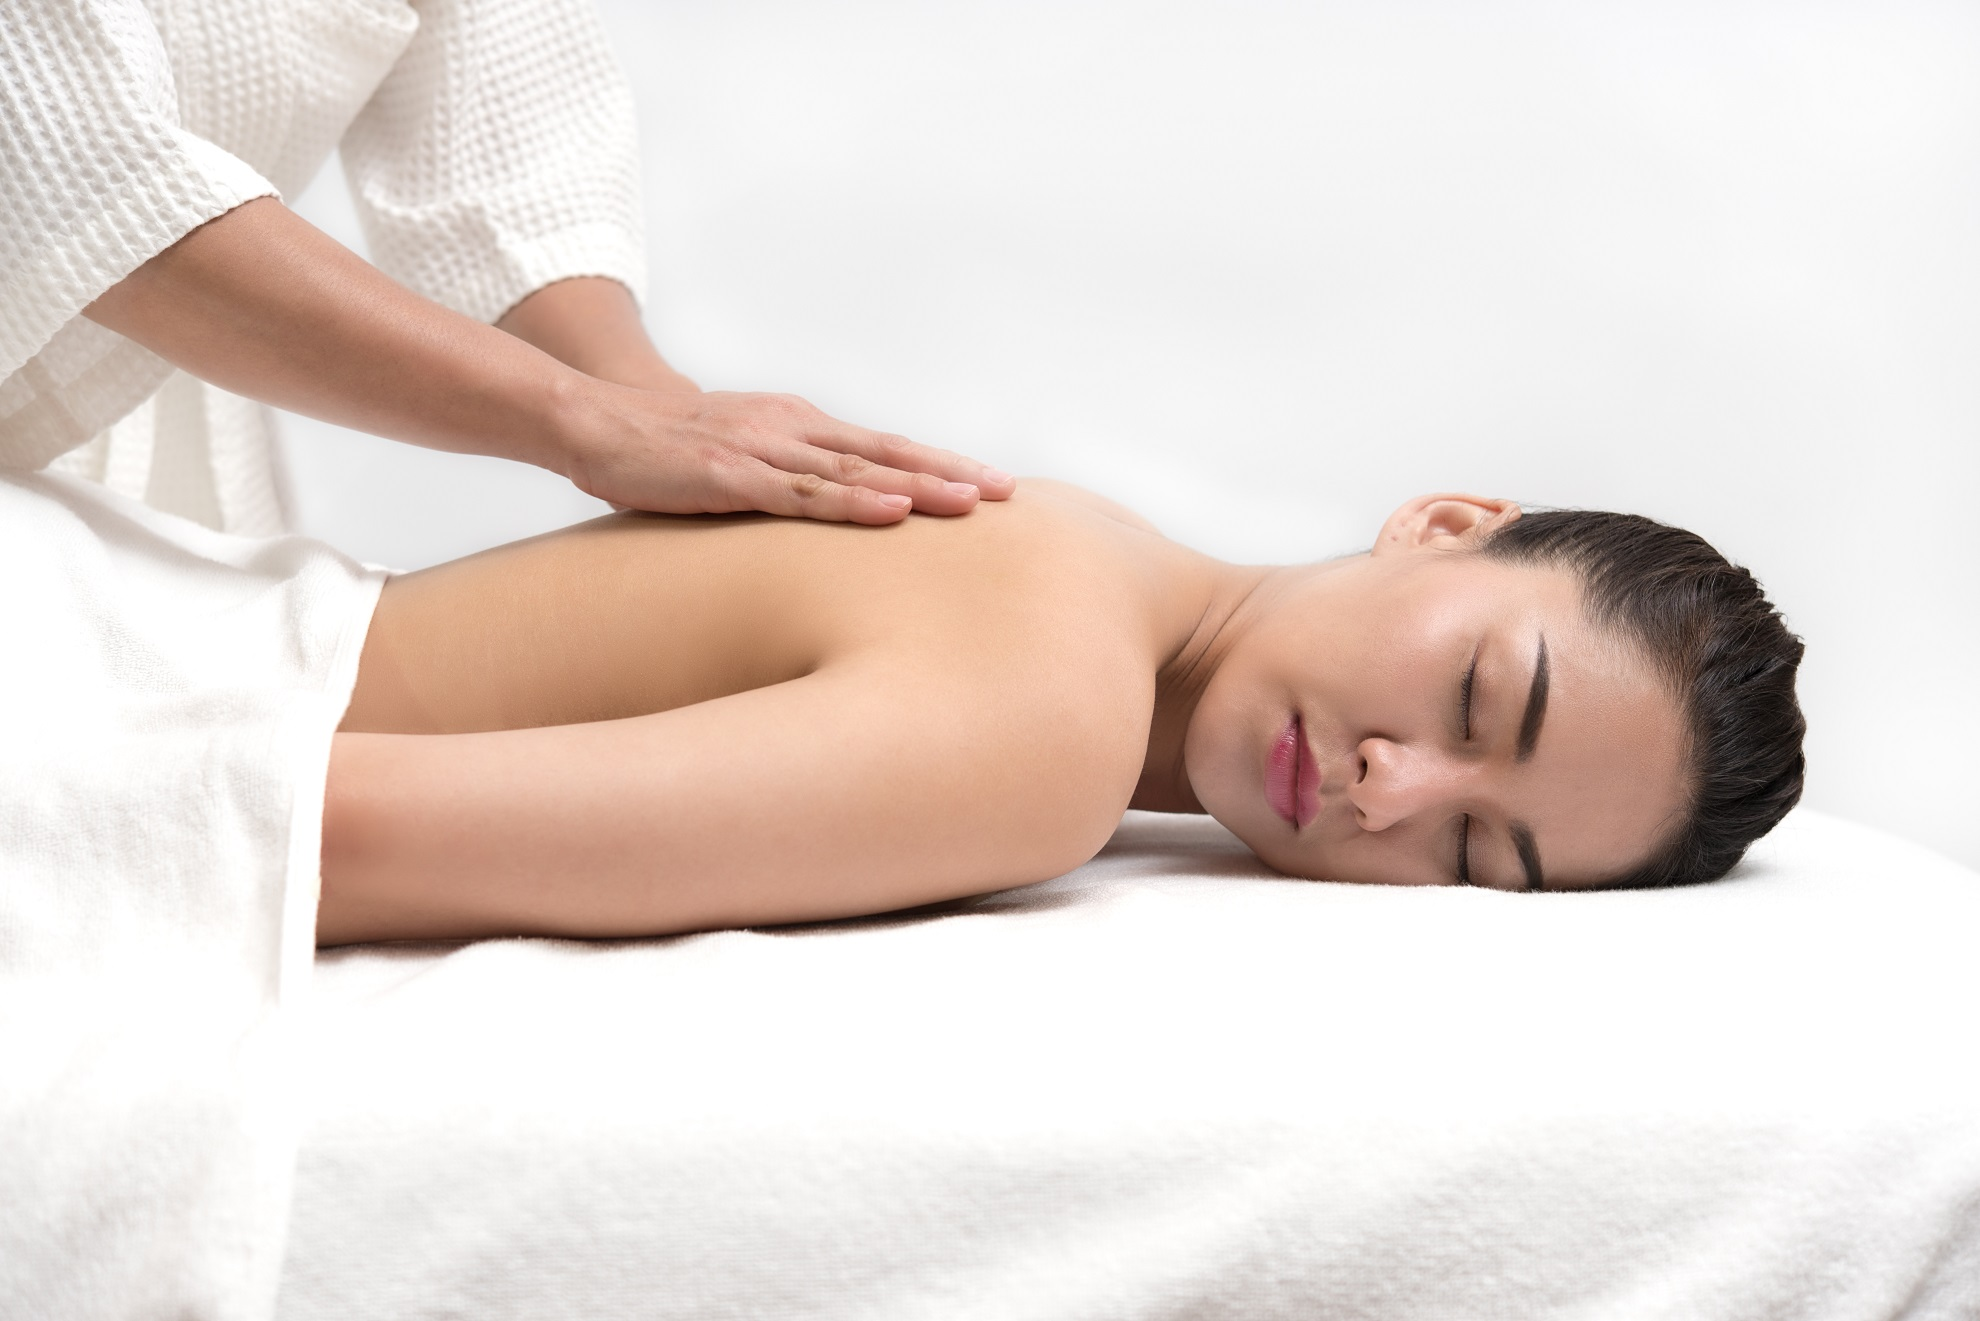 Manage Your Work Stress With Registered Massage Therapy